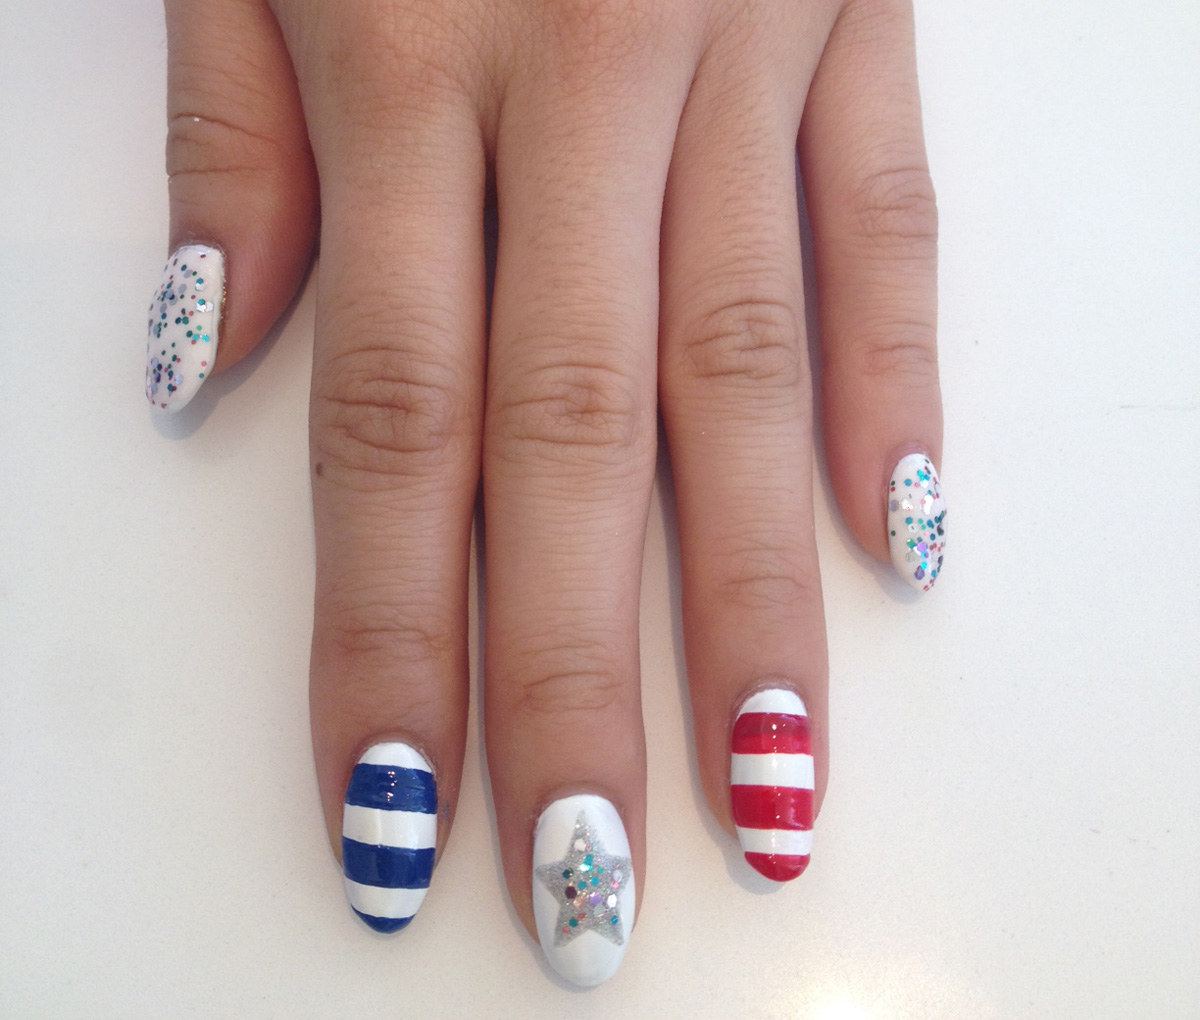 Nail Polish On Pinky Finger Meaning: Nail Art Tutorial: Patriotic Stars And Stripes